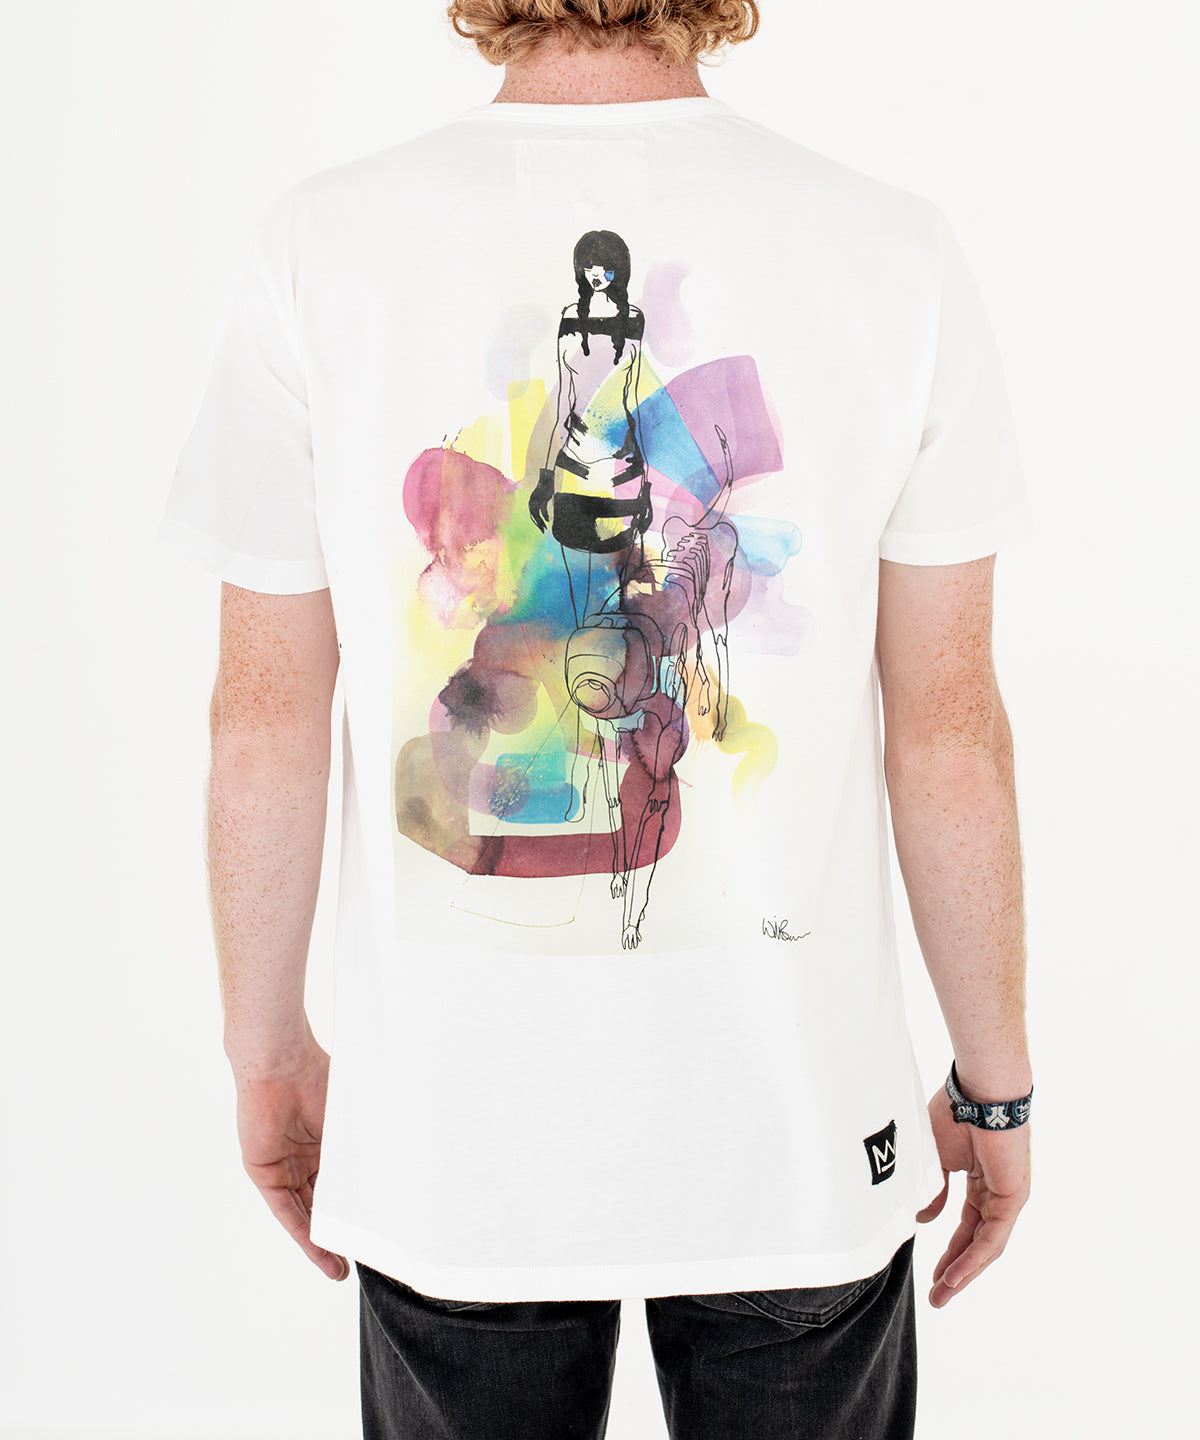 Will Barras 'Darpa Dog' T-Shirt